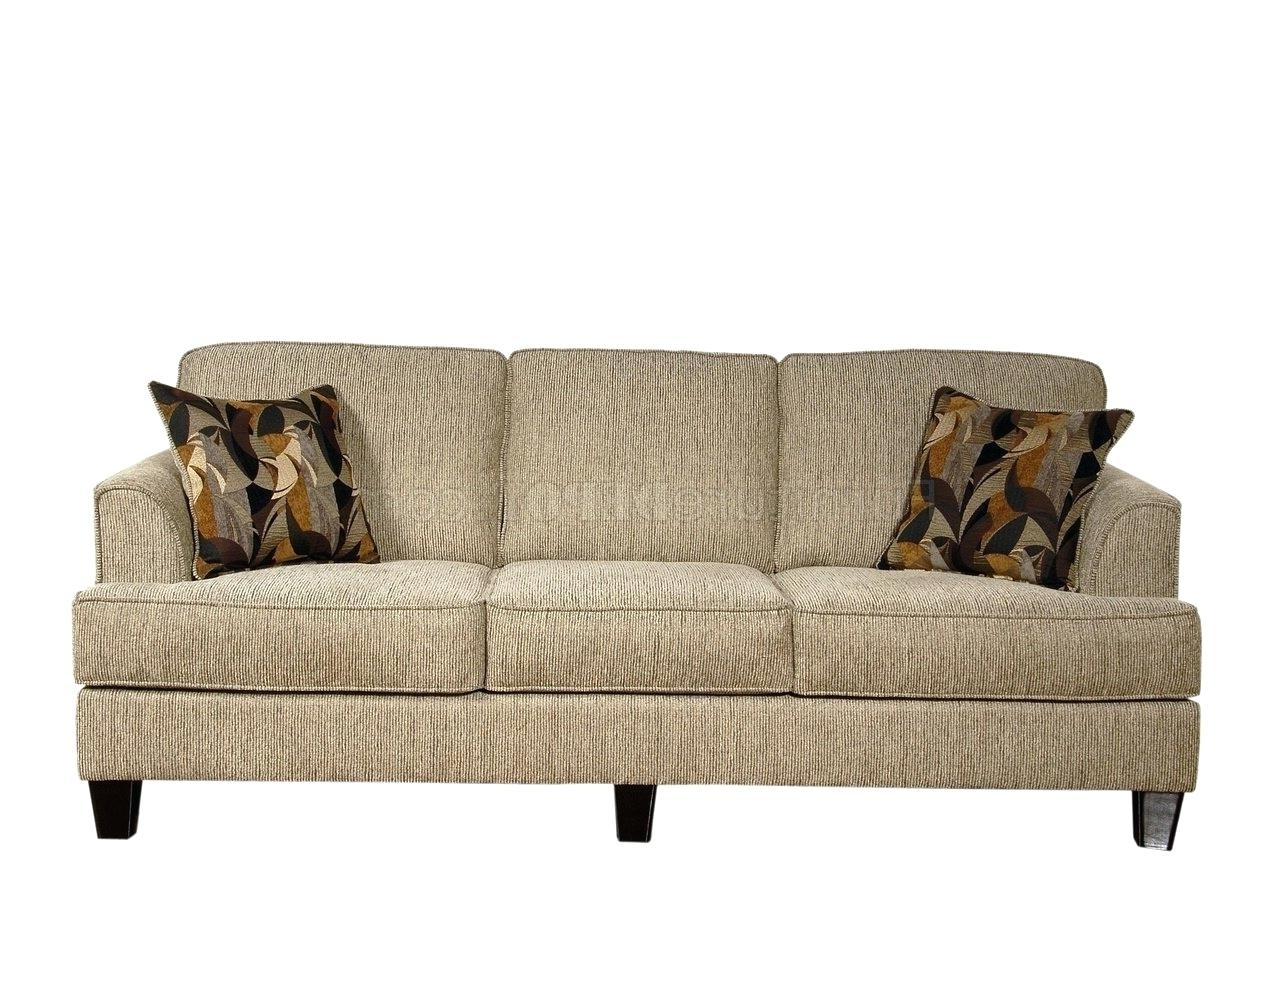 Most Up To Date Sofa : 1920Sofa And Chairet Blueets In Leather Onale Casa Evora Inside Clarksville Tn Sectional Sofas (View 9 of 20)